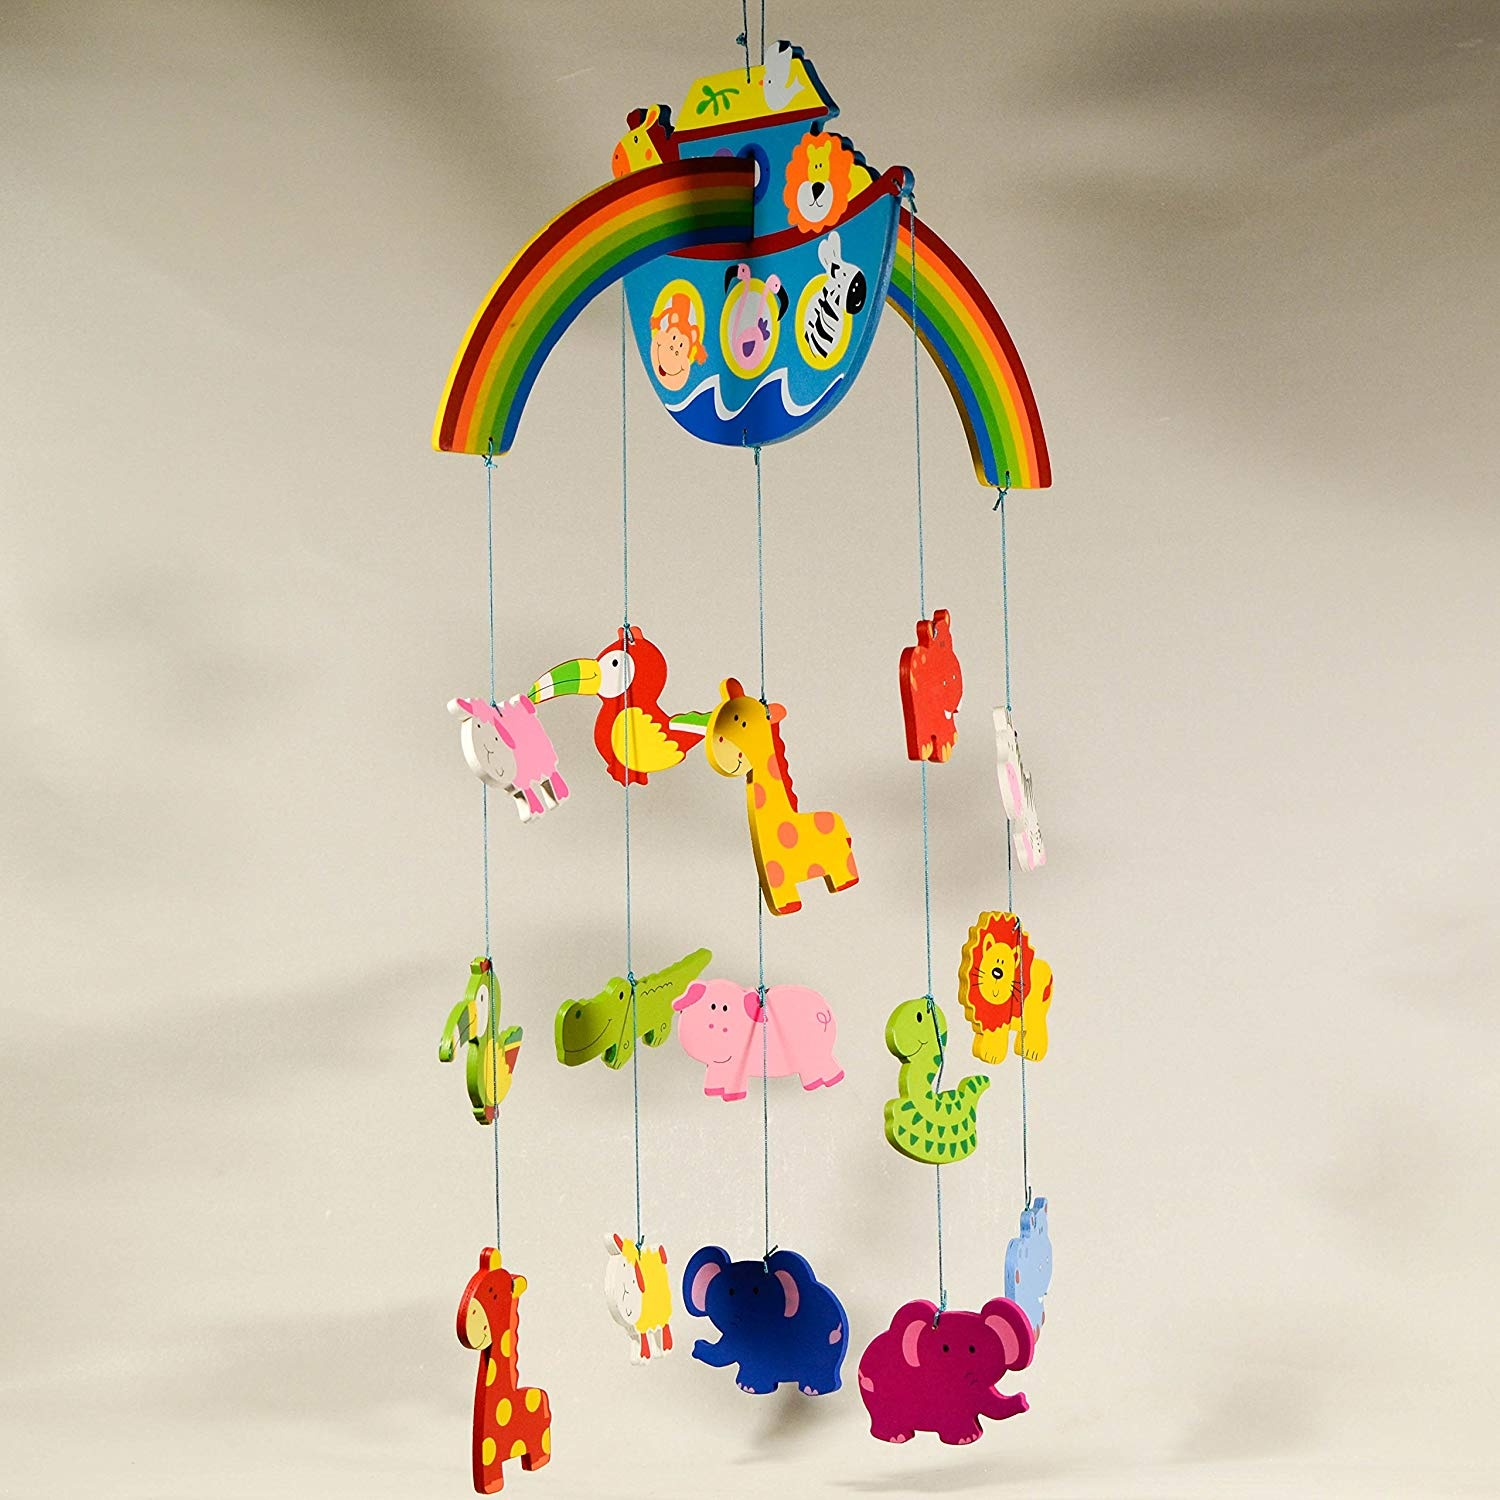 Wooden Baby Mobile Noah S Ark Wooden Hanging Mobile Nursery Decor Animal Mobile Ornament Baby Room Decor